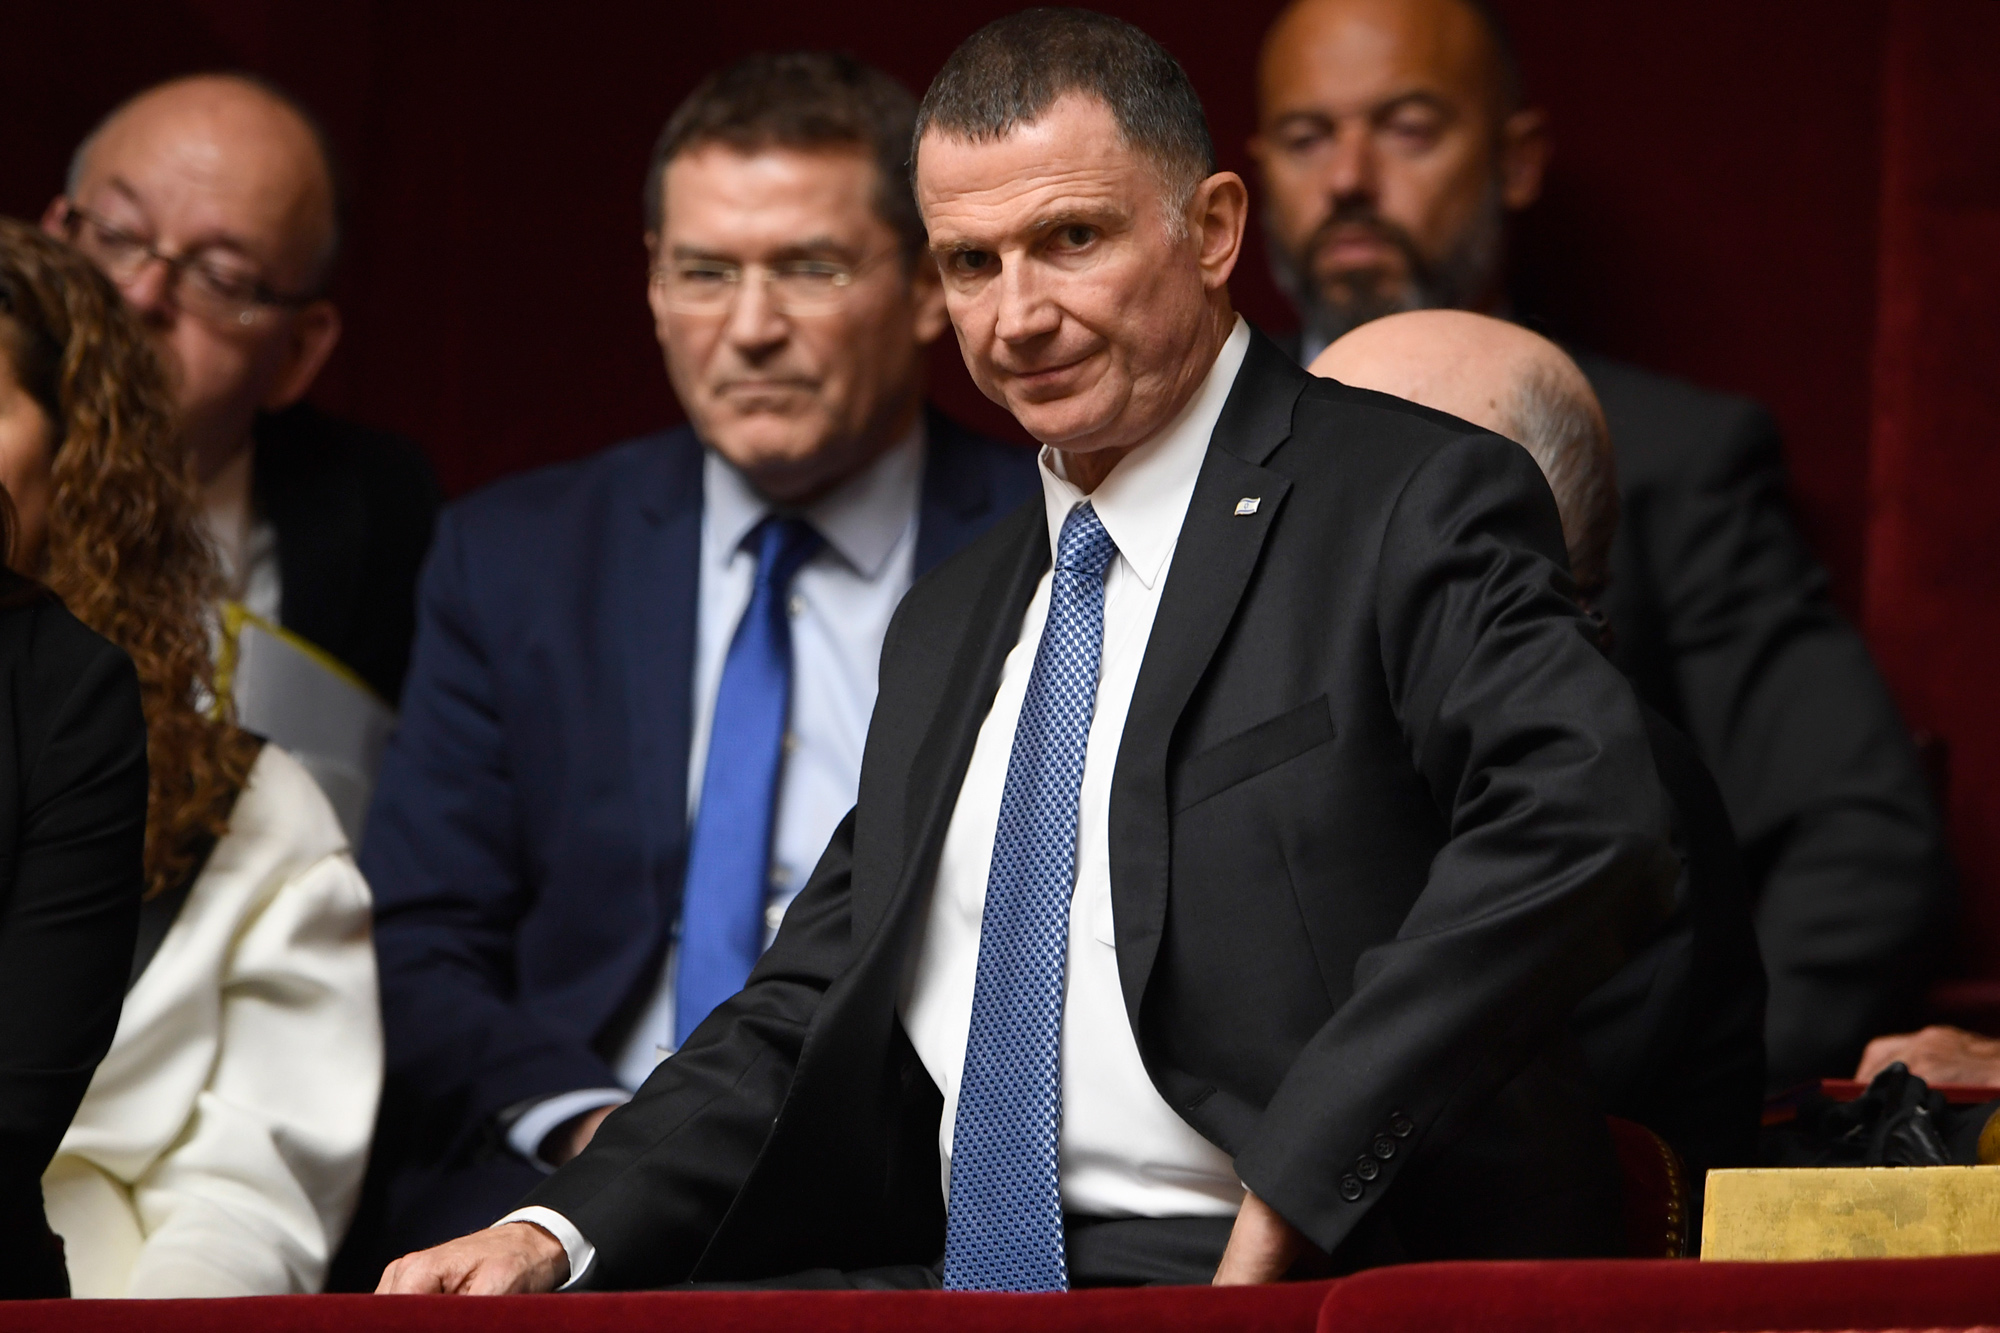 Israel's Health Minister Yuli Edelstein is seen at the French National Assembly in Paris on May 16, 2018.